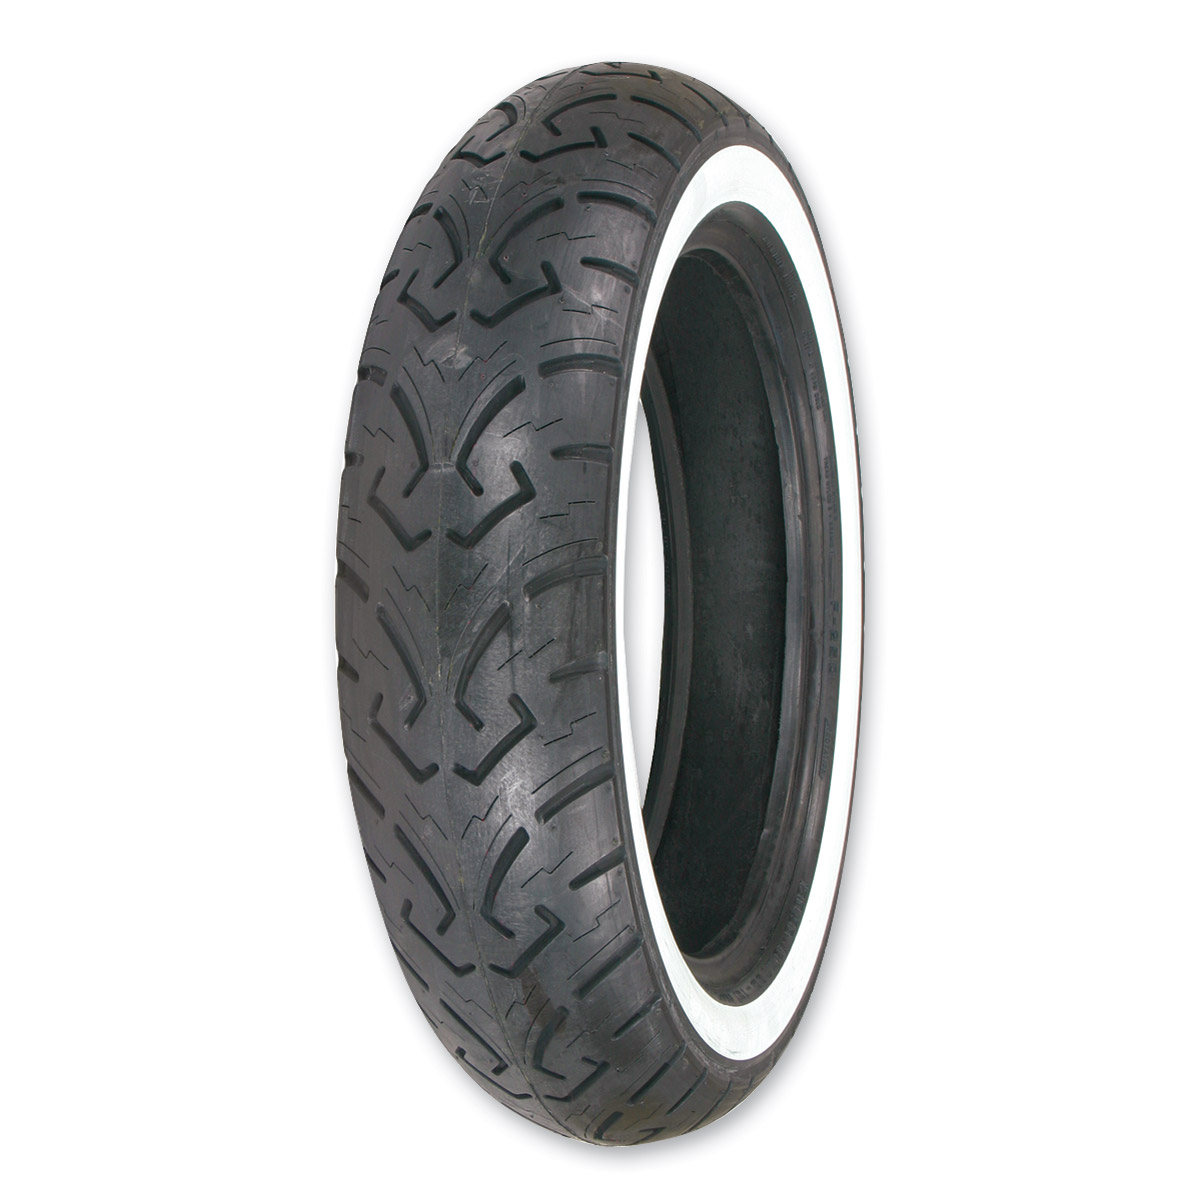 Shinko '250' MT90-16 Wide Whitewall Rear Tire